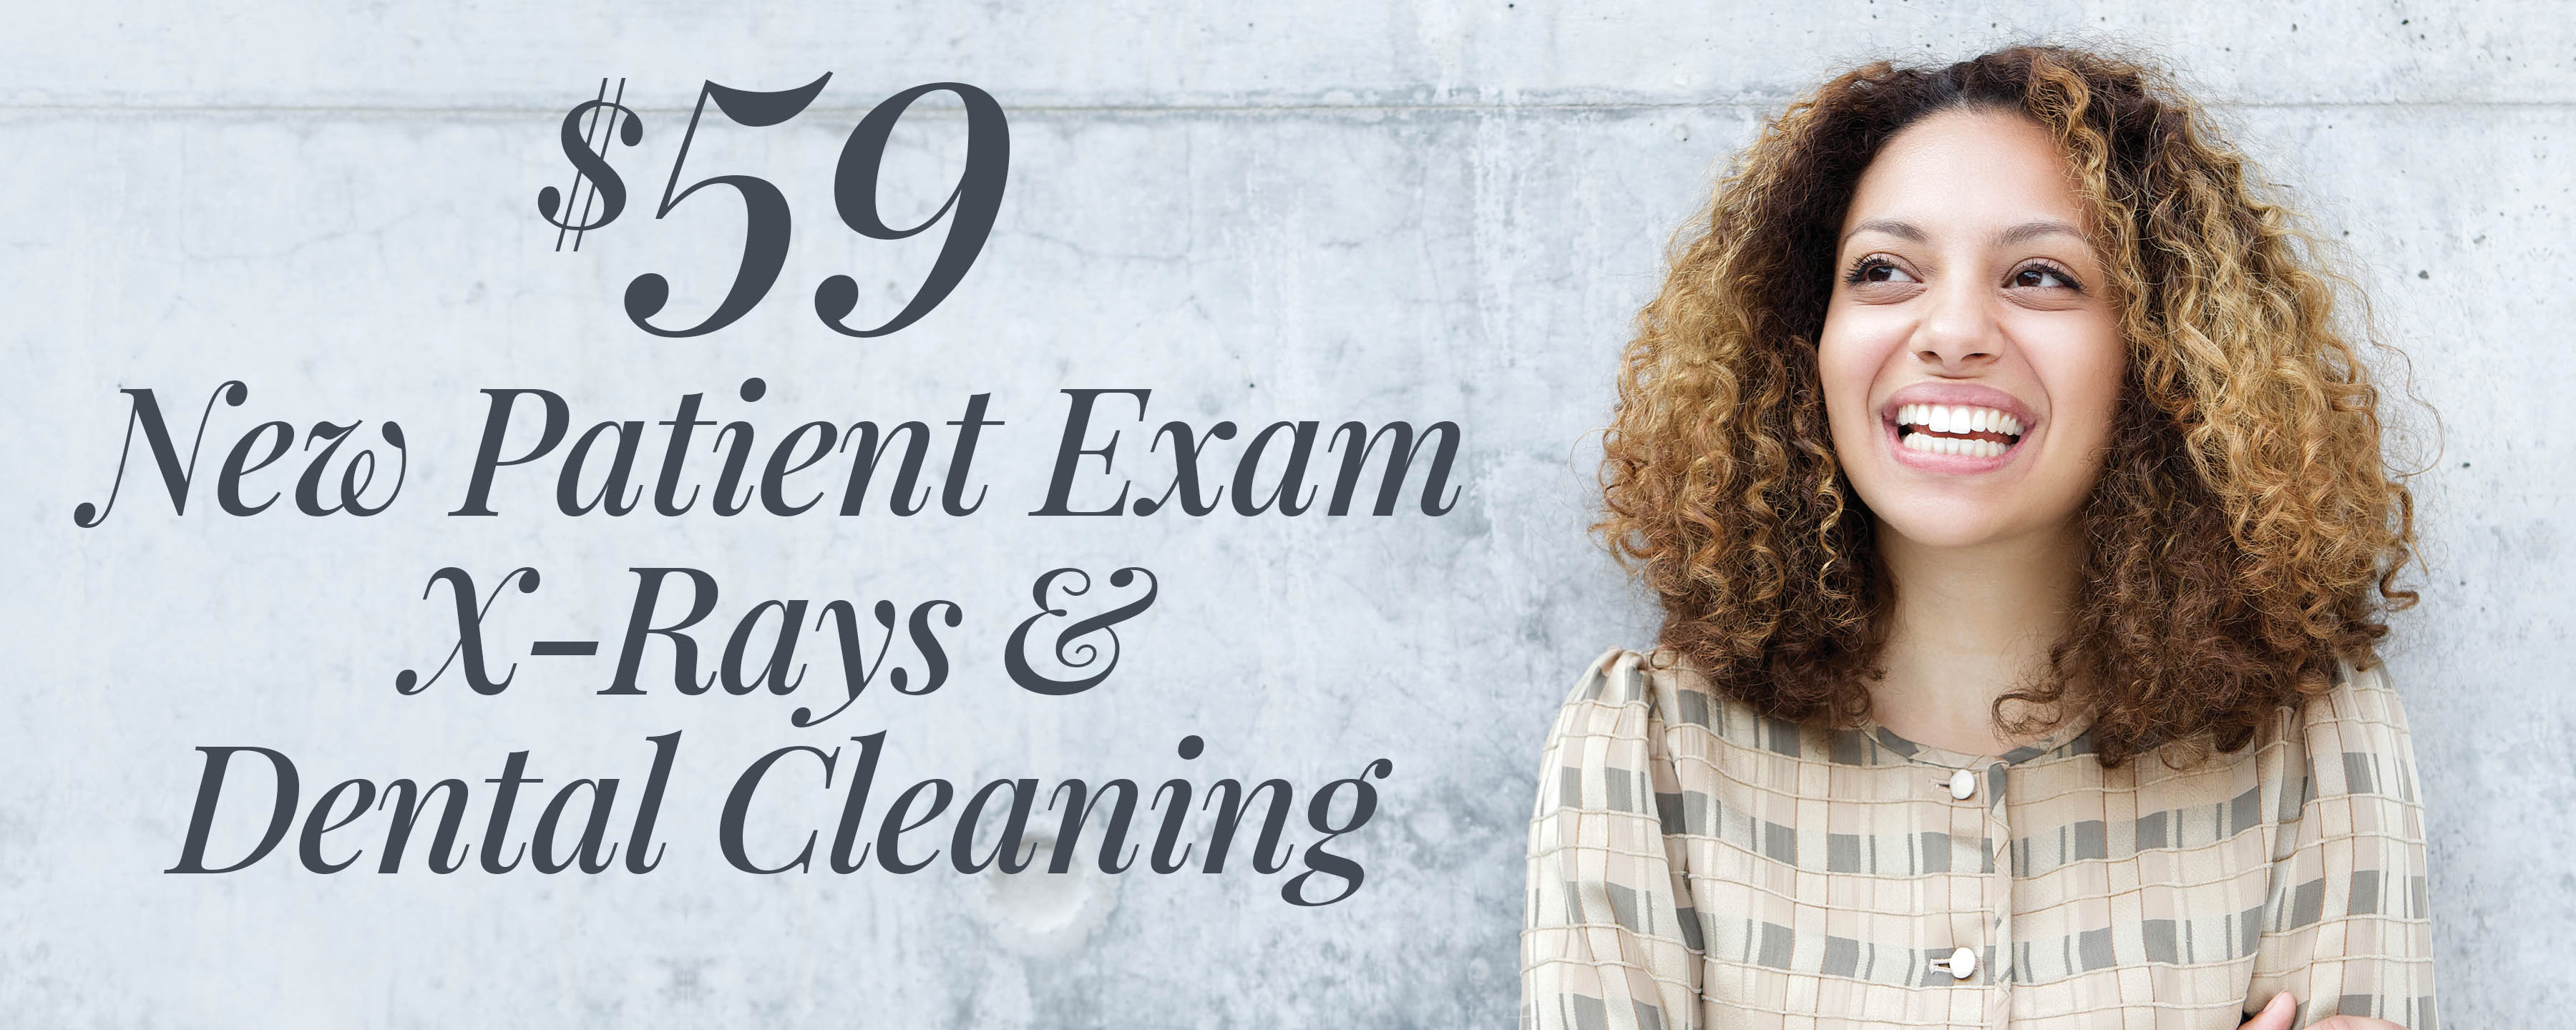 $59 New Patient Exam, X-Rays & Dental Cleaning*